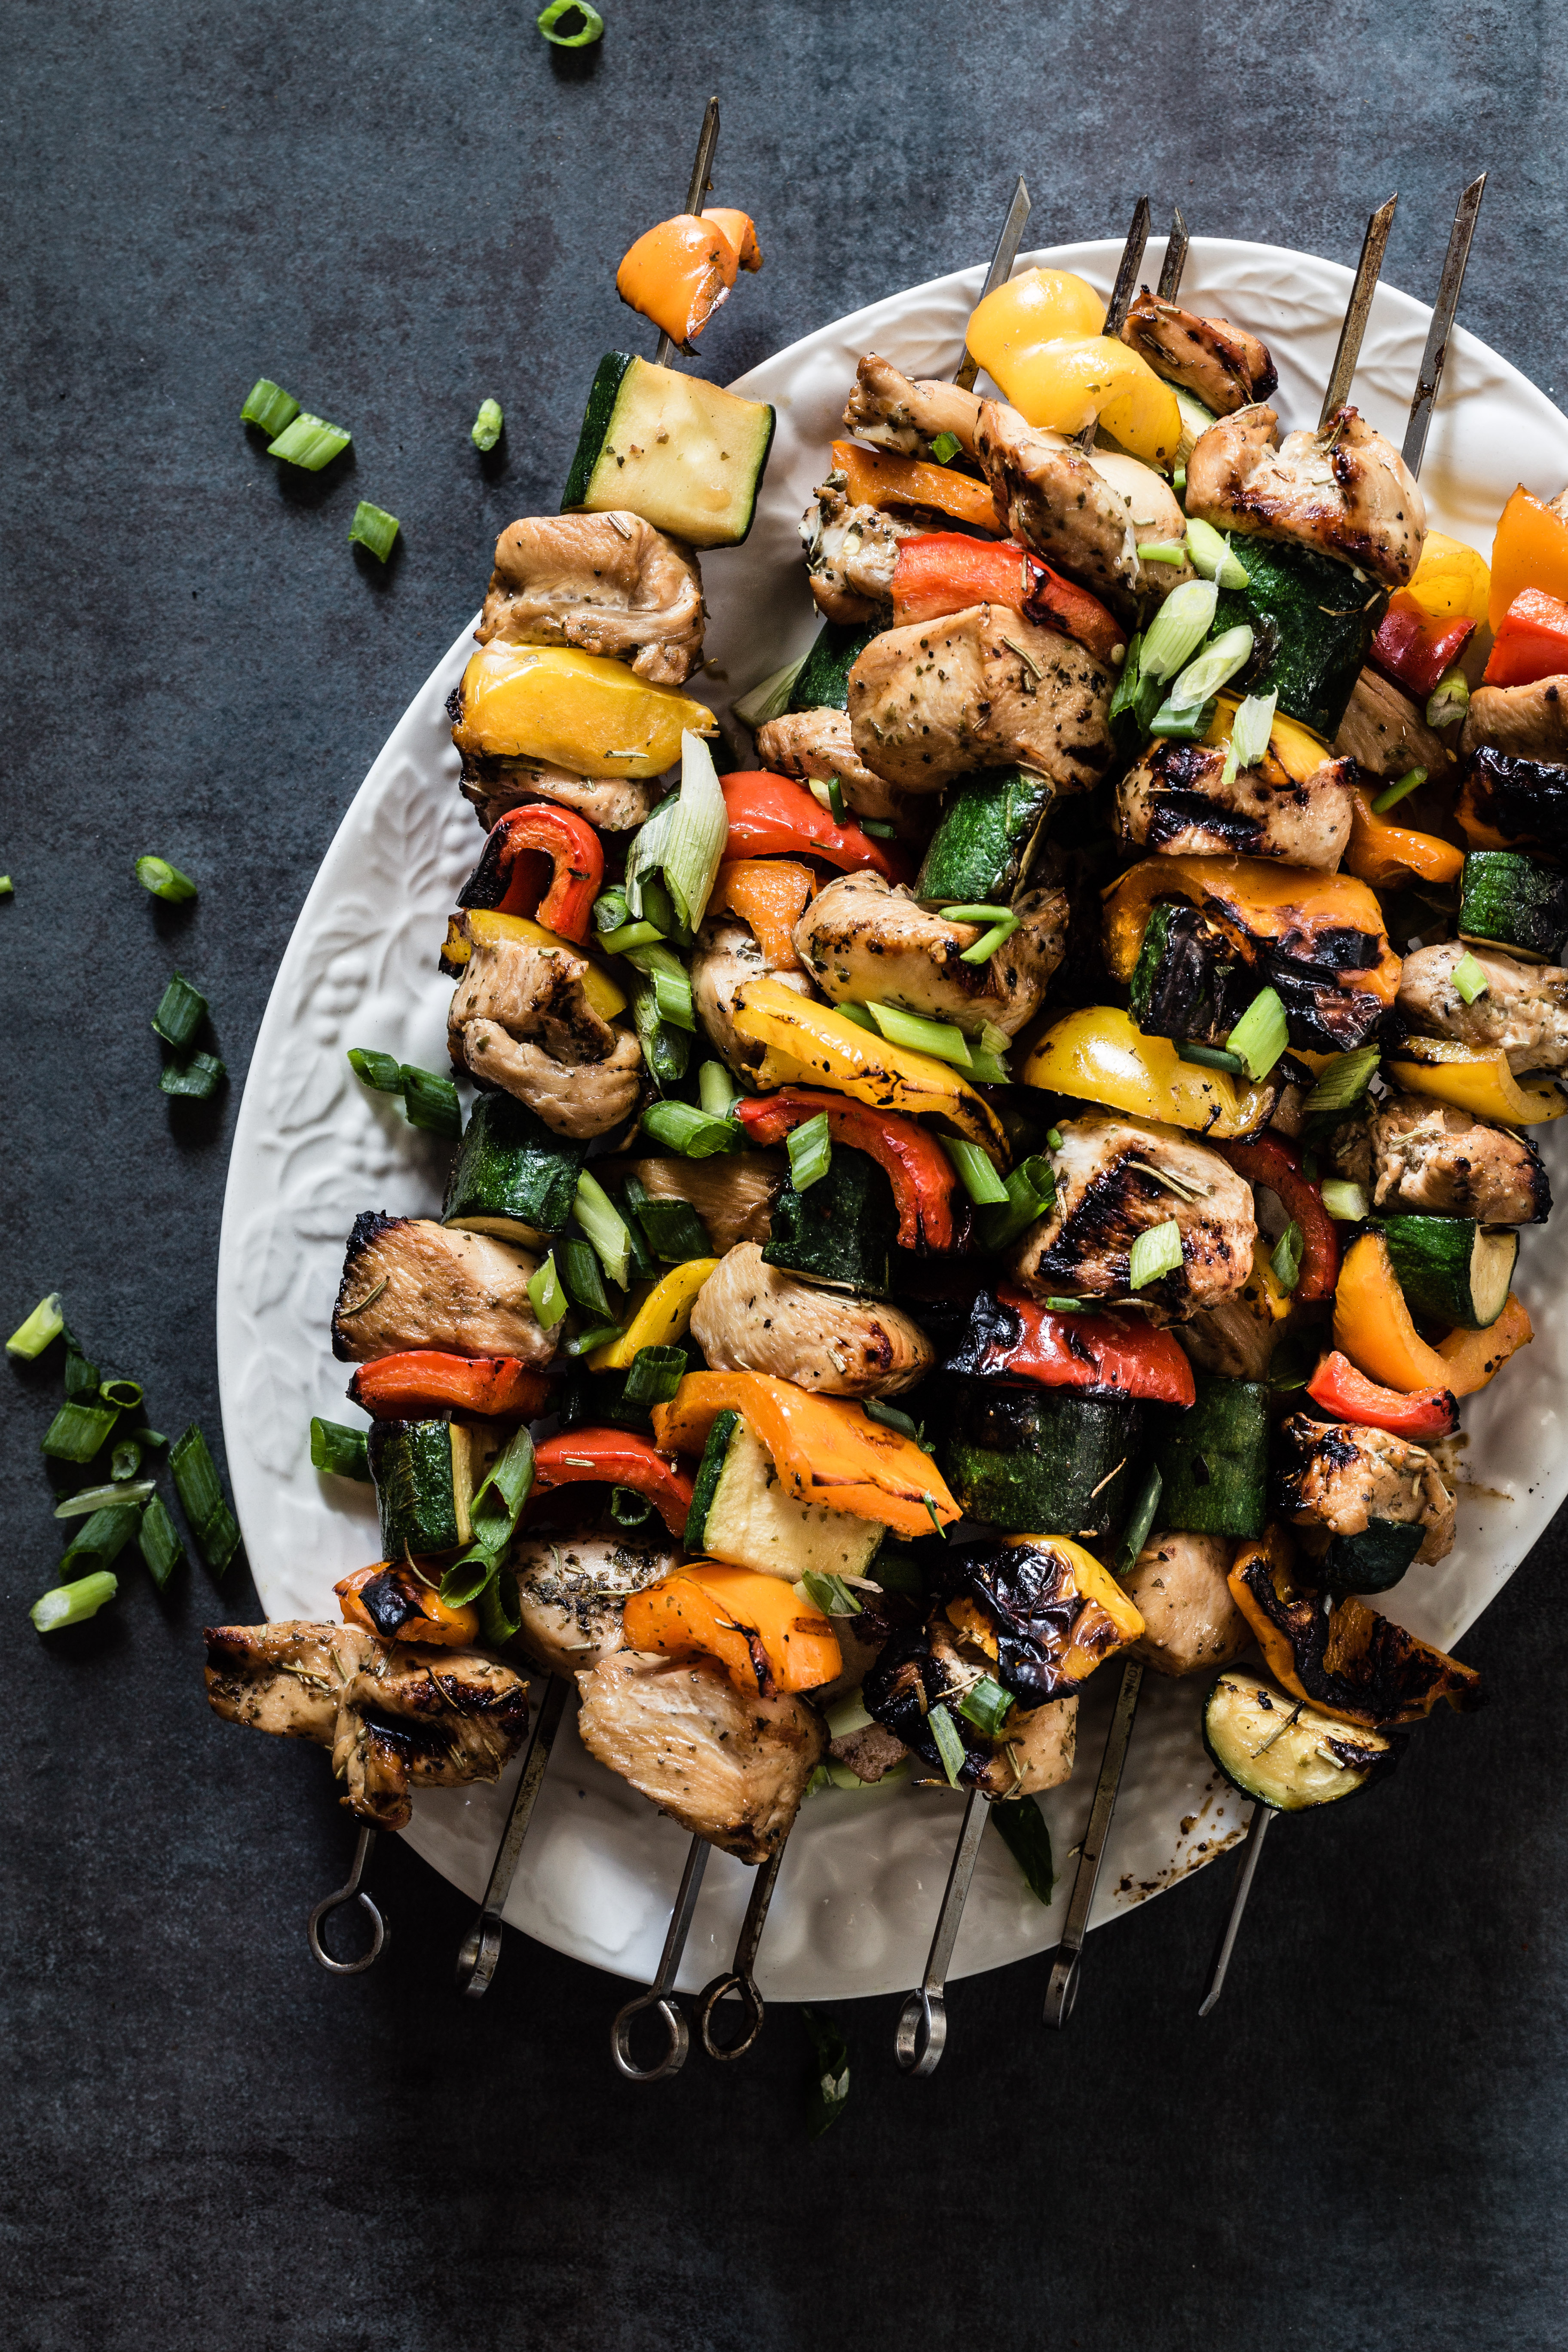 How long do i grill chicken kabobs - How Long Do I Grill Chicken Kabobs 50